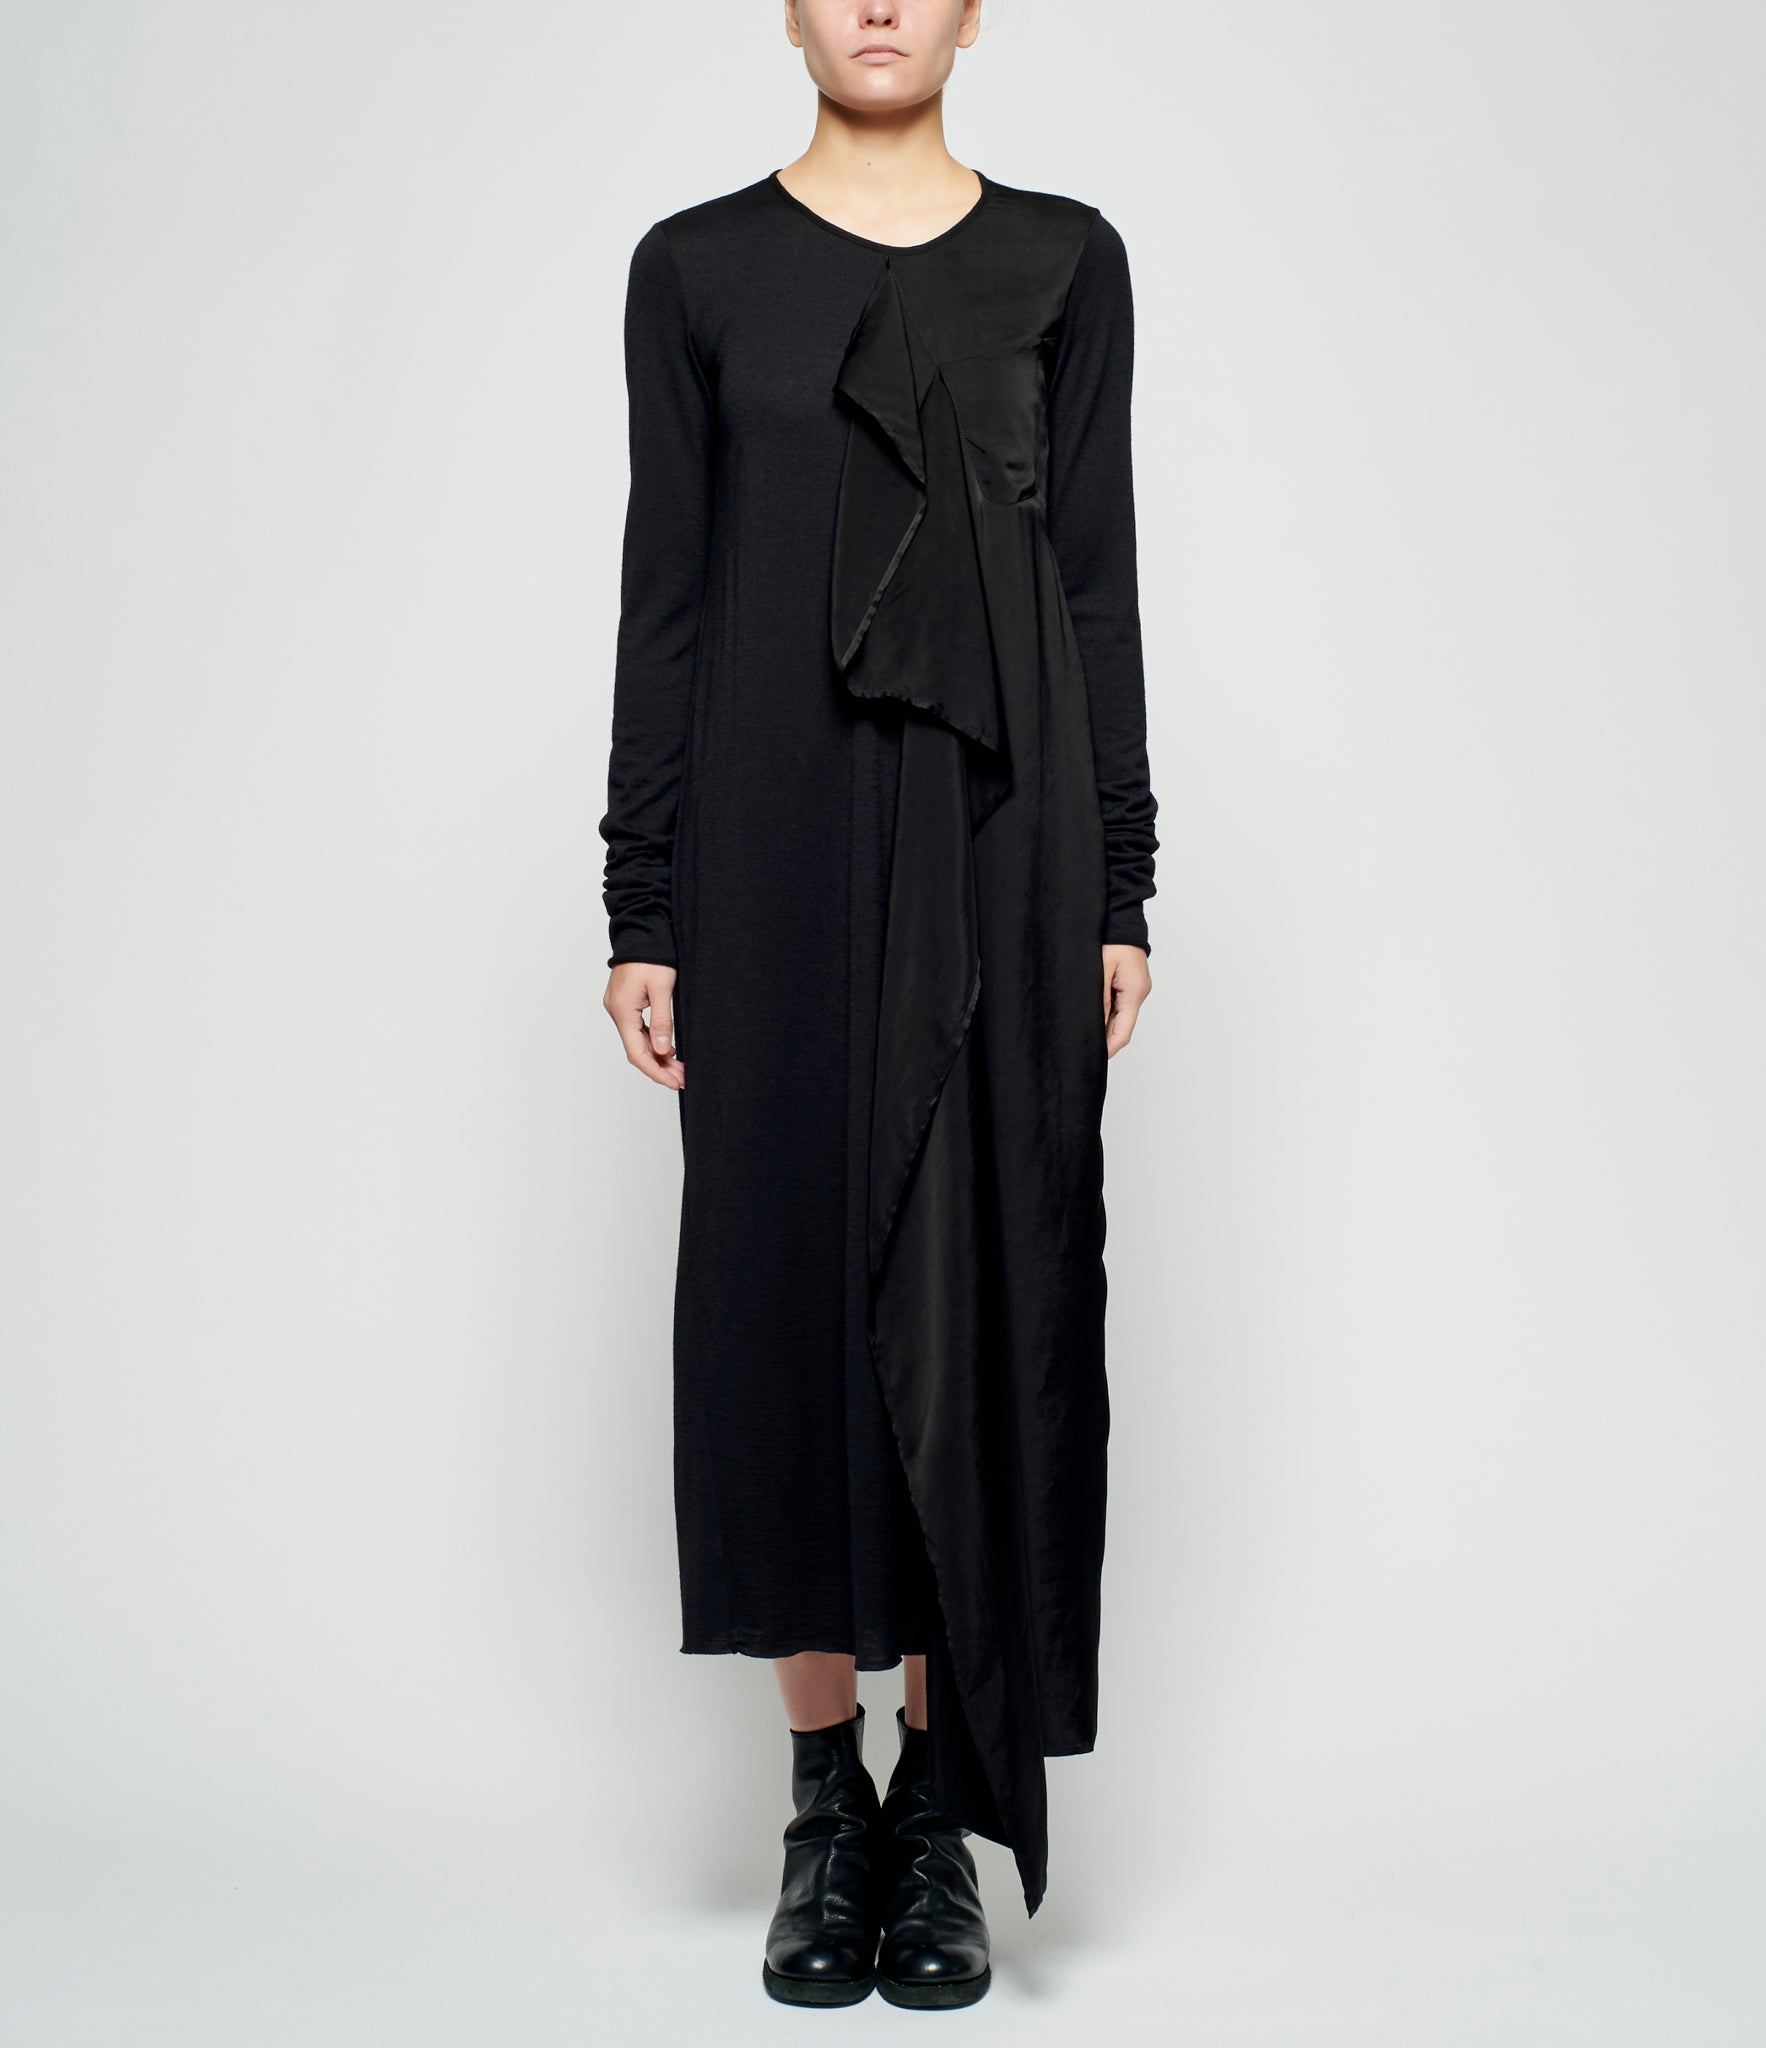 Uma Wang Jane Dress